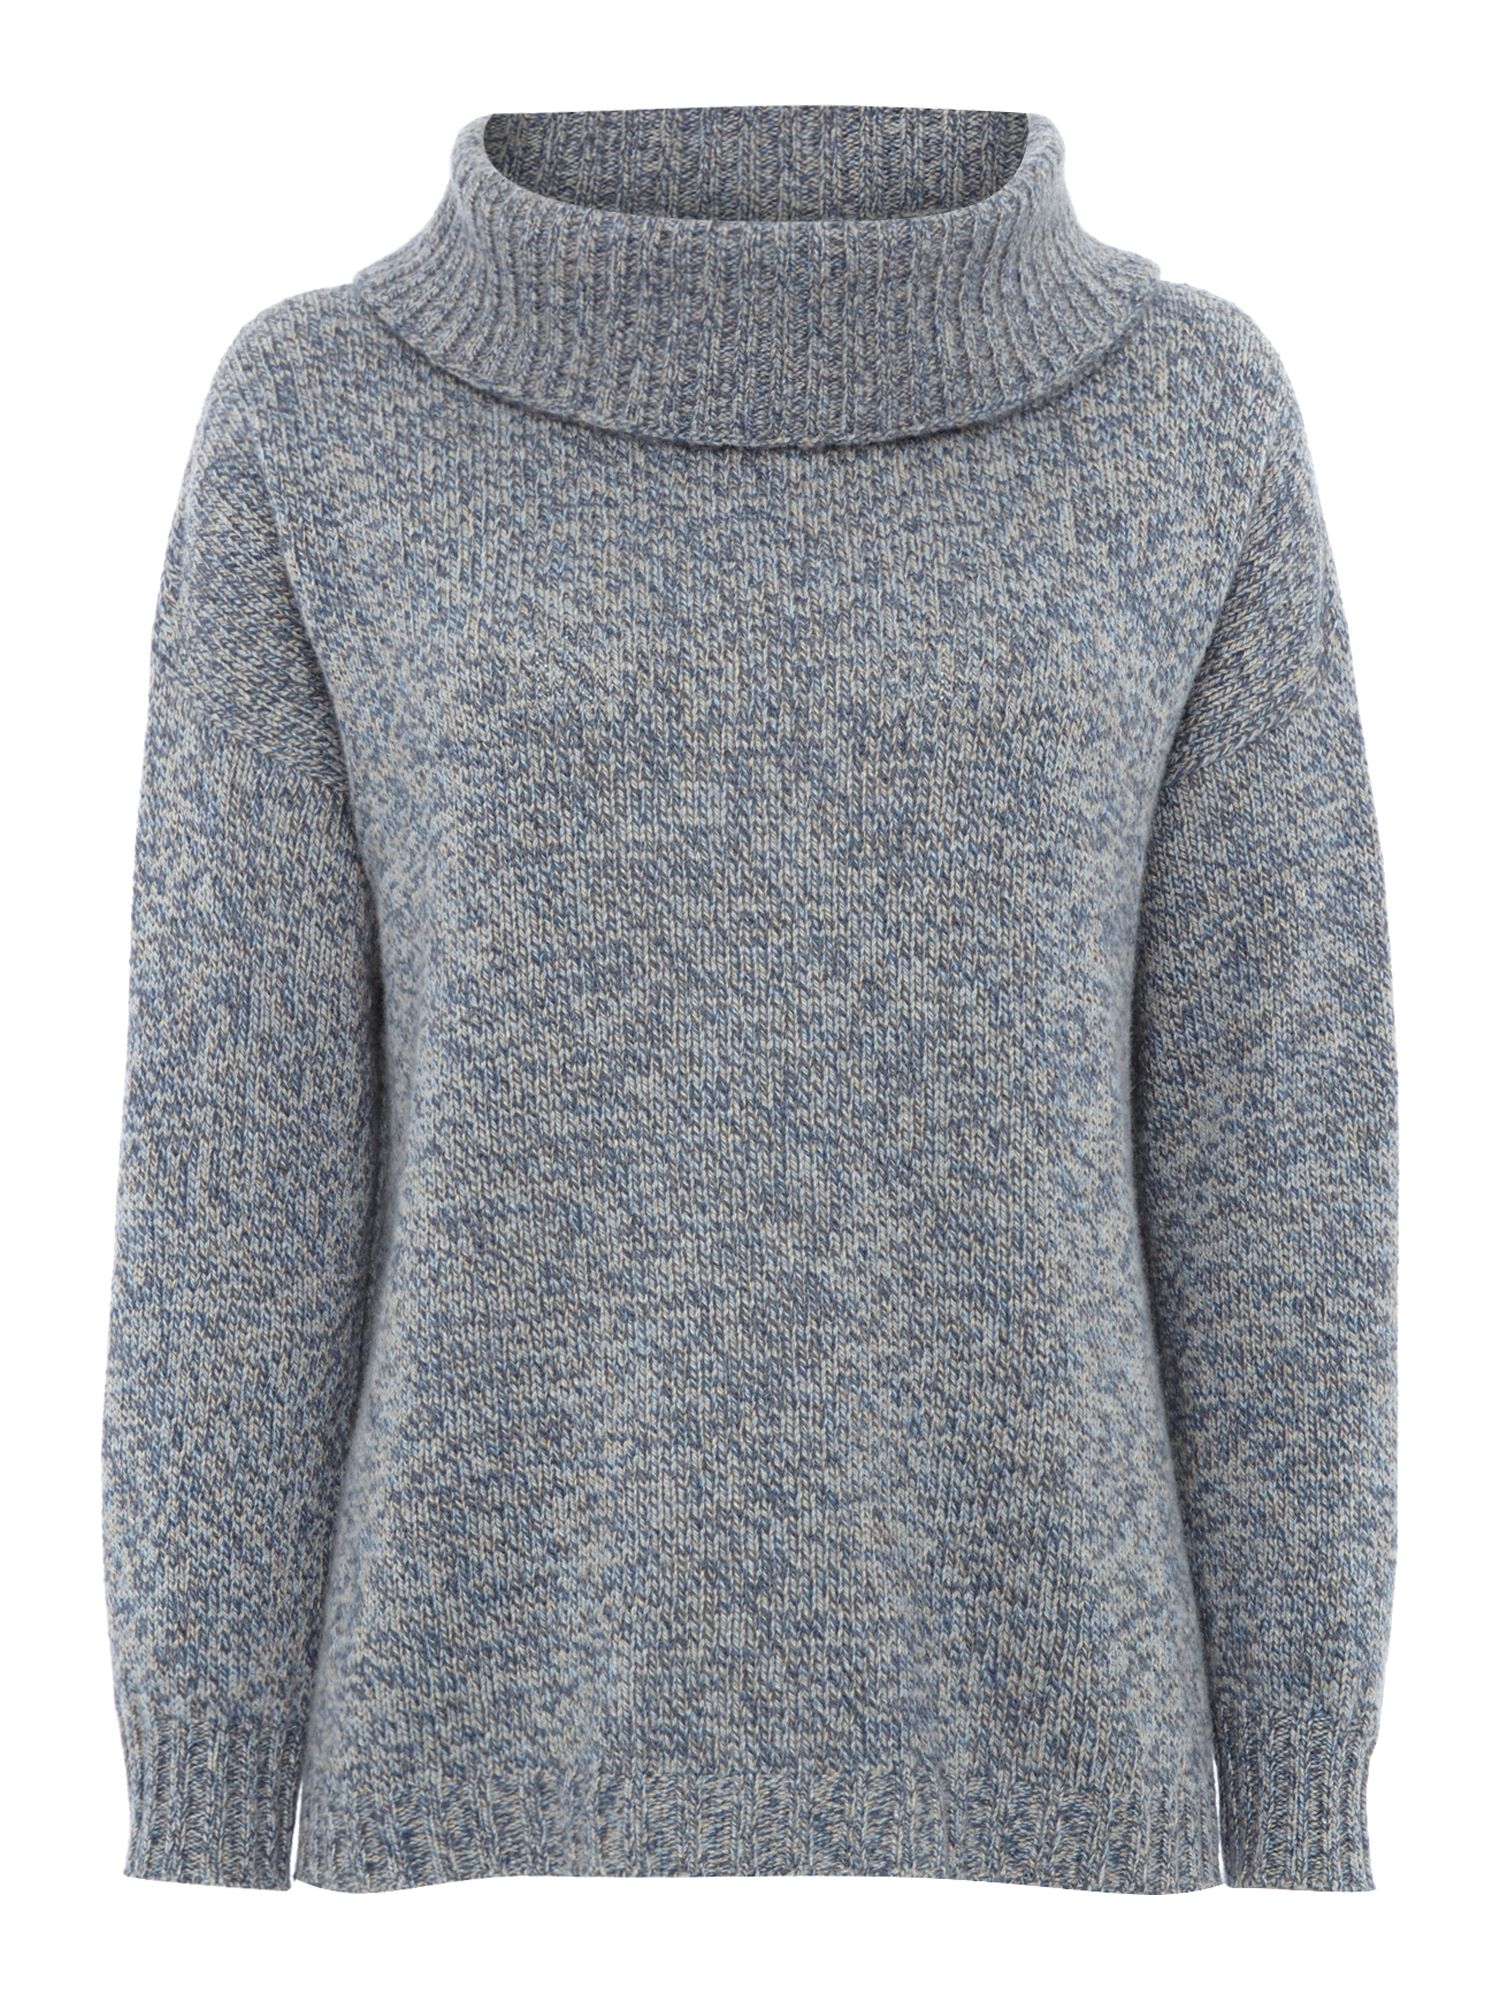 Dandy cashmere wool jumper with detachable collar